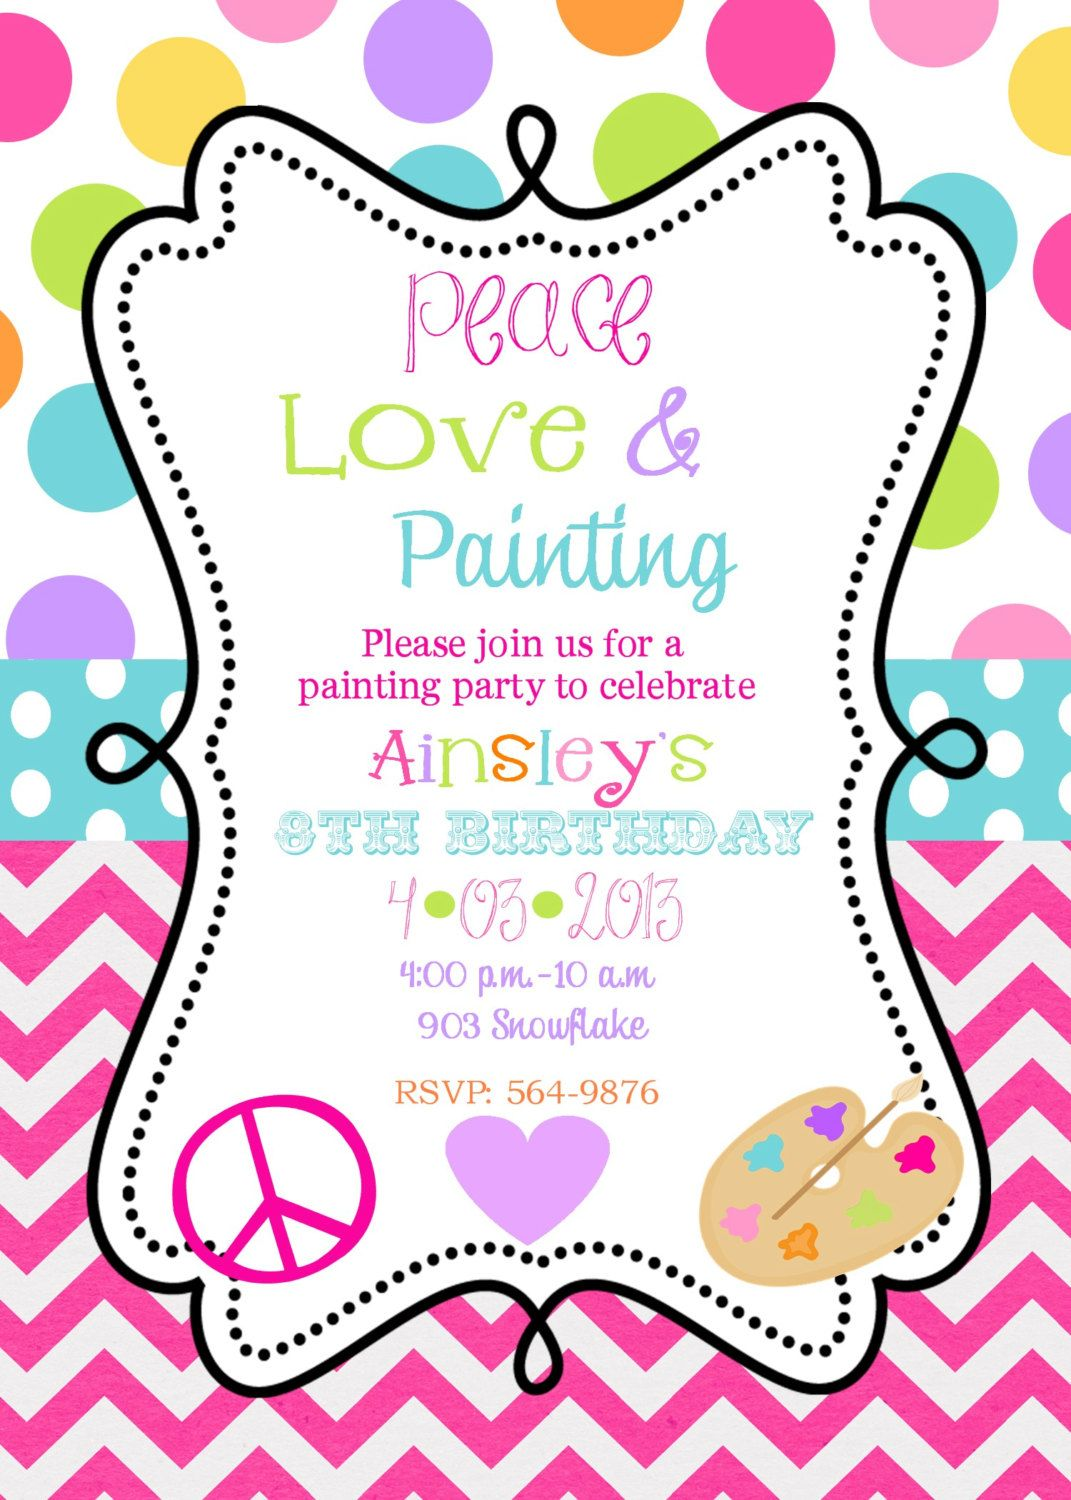 12 Peace Love Painting Party Birthday by noteablechic on ...